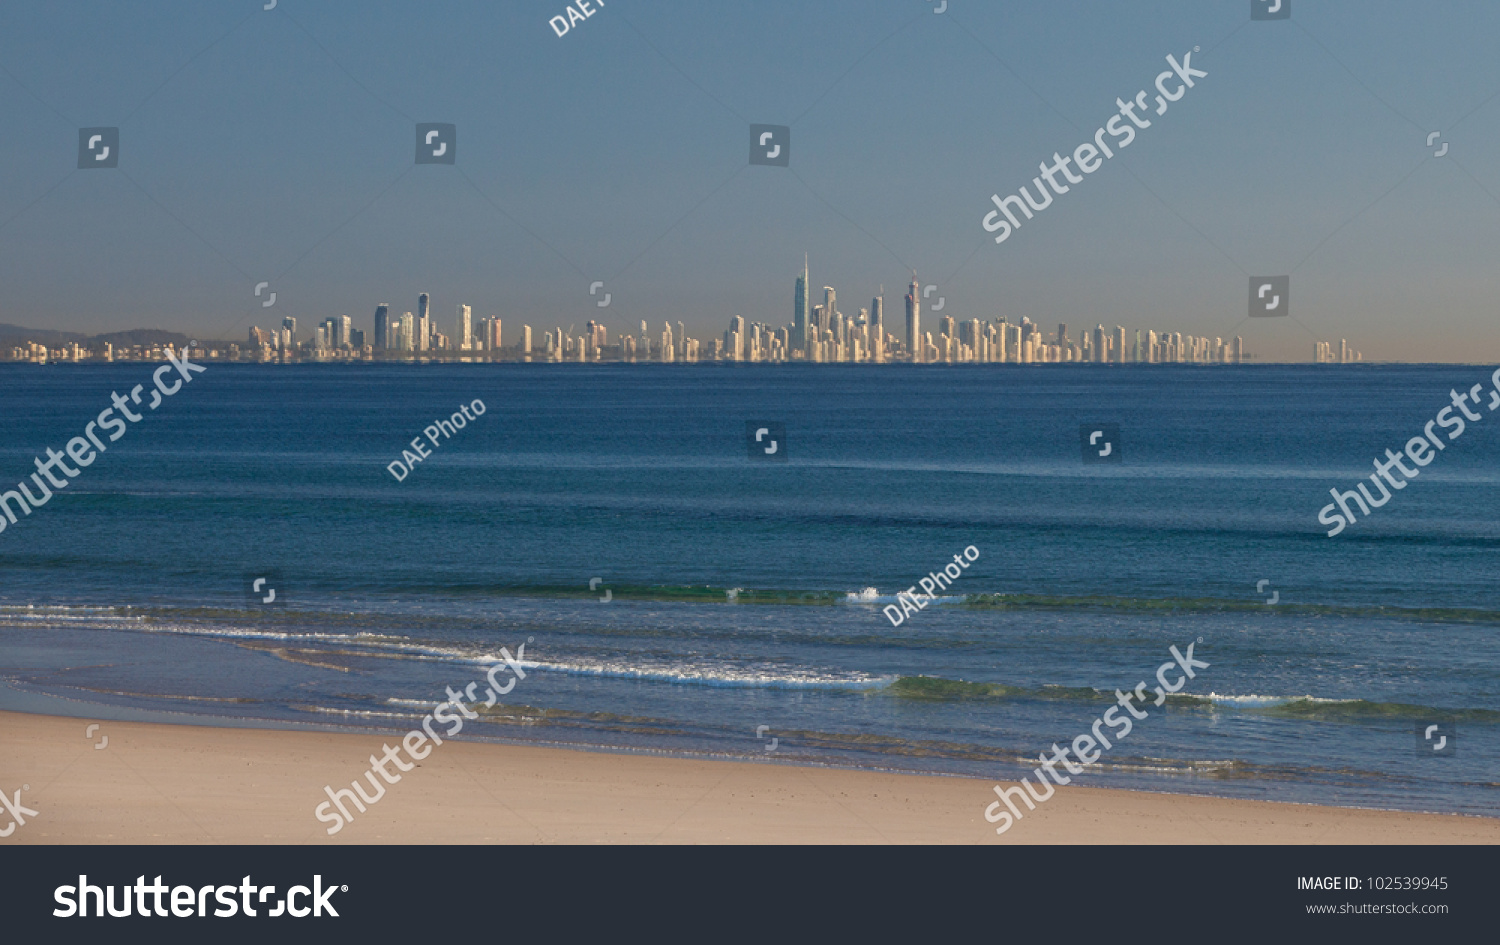 how to get from coolangatta airport to surfers paradise